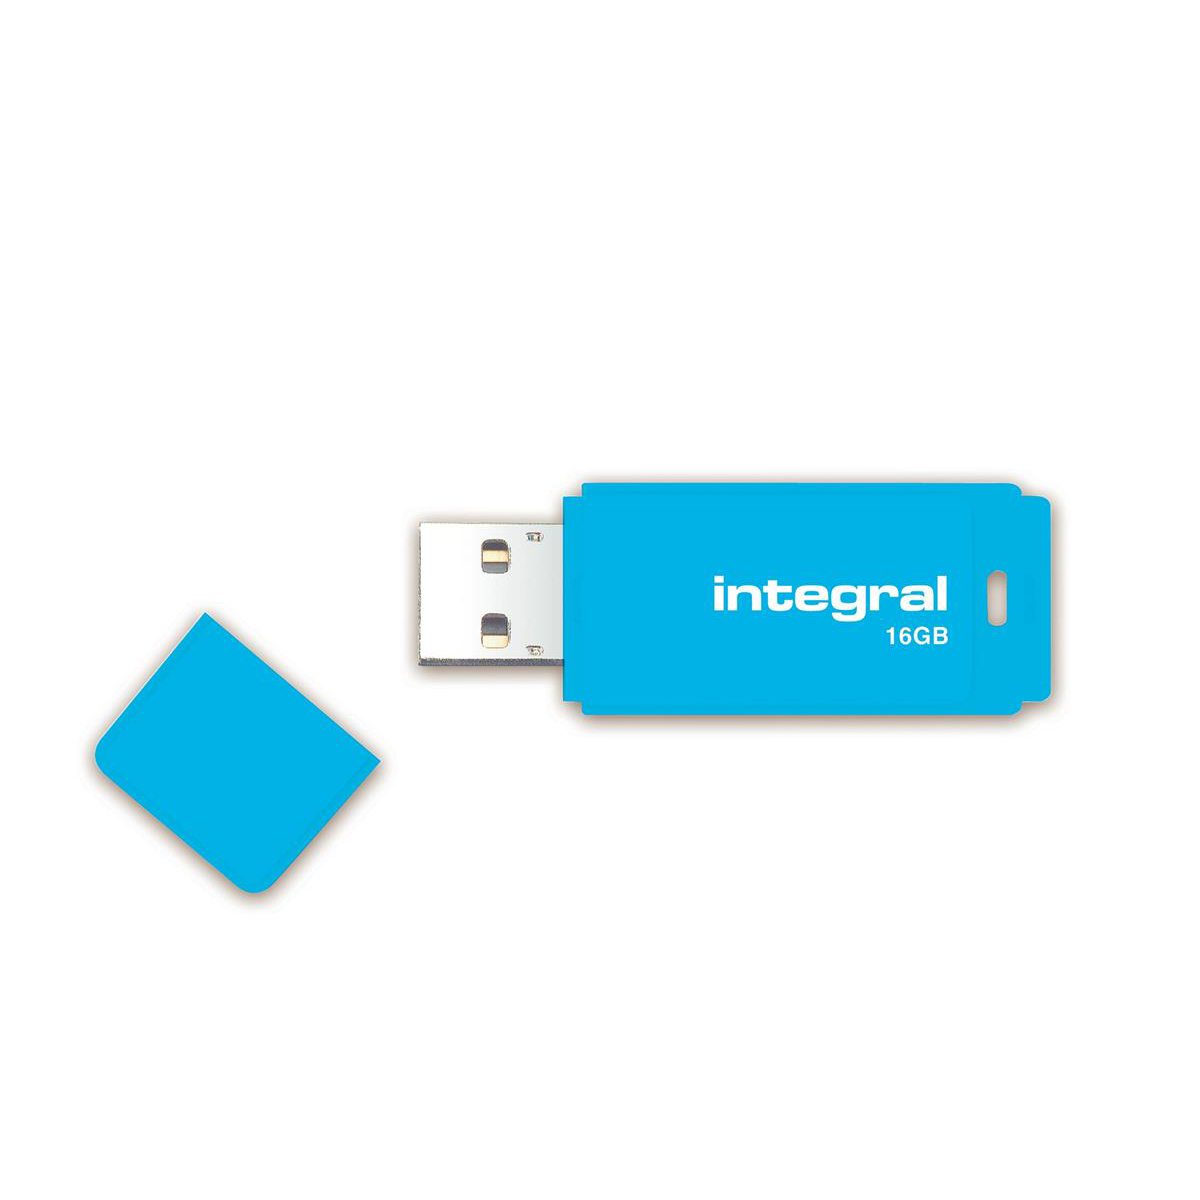 Integral Neon USB Drive 2.0 Capacity 16GB Blue Ref INFD16GBNEONB